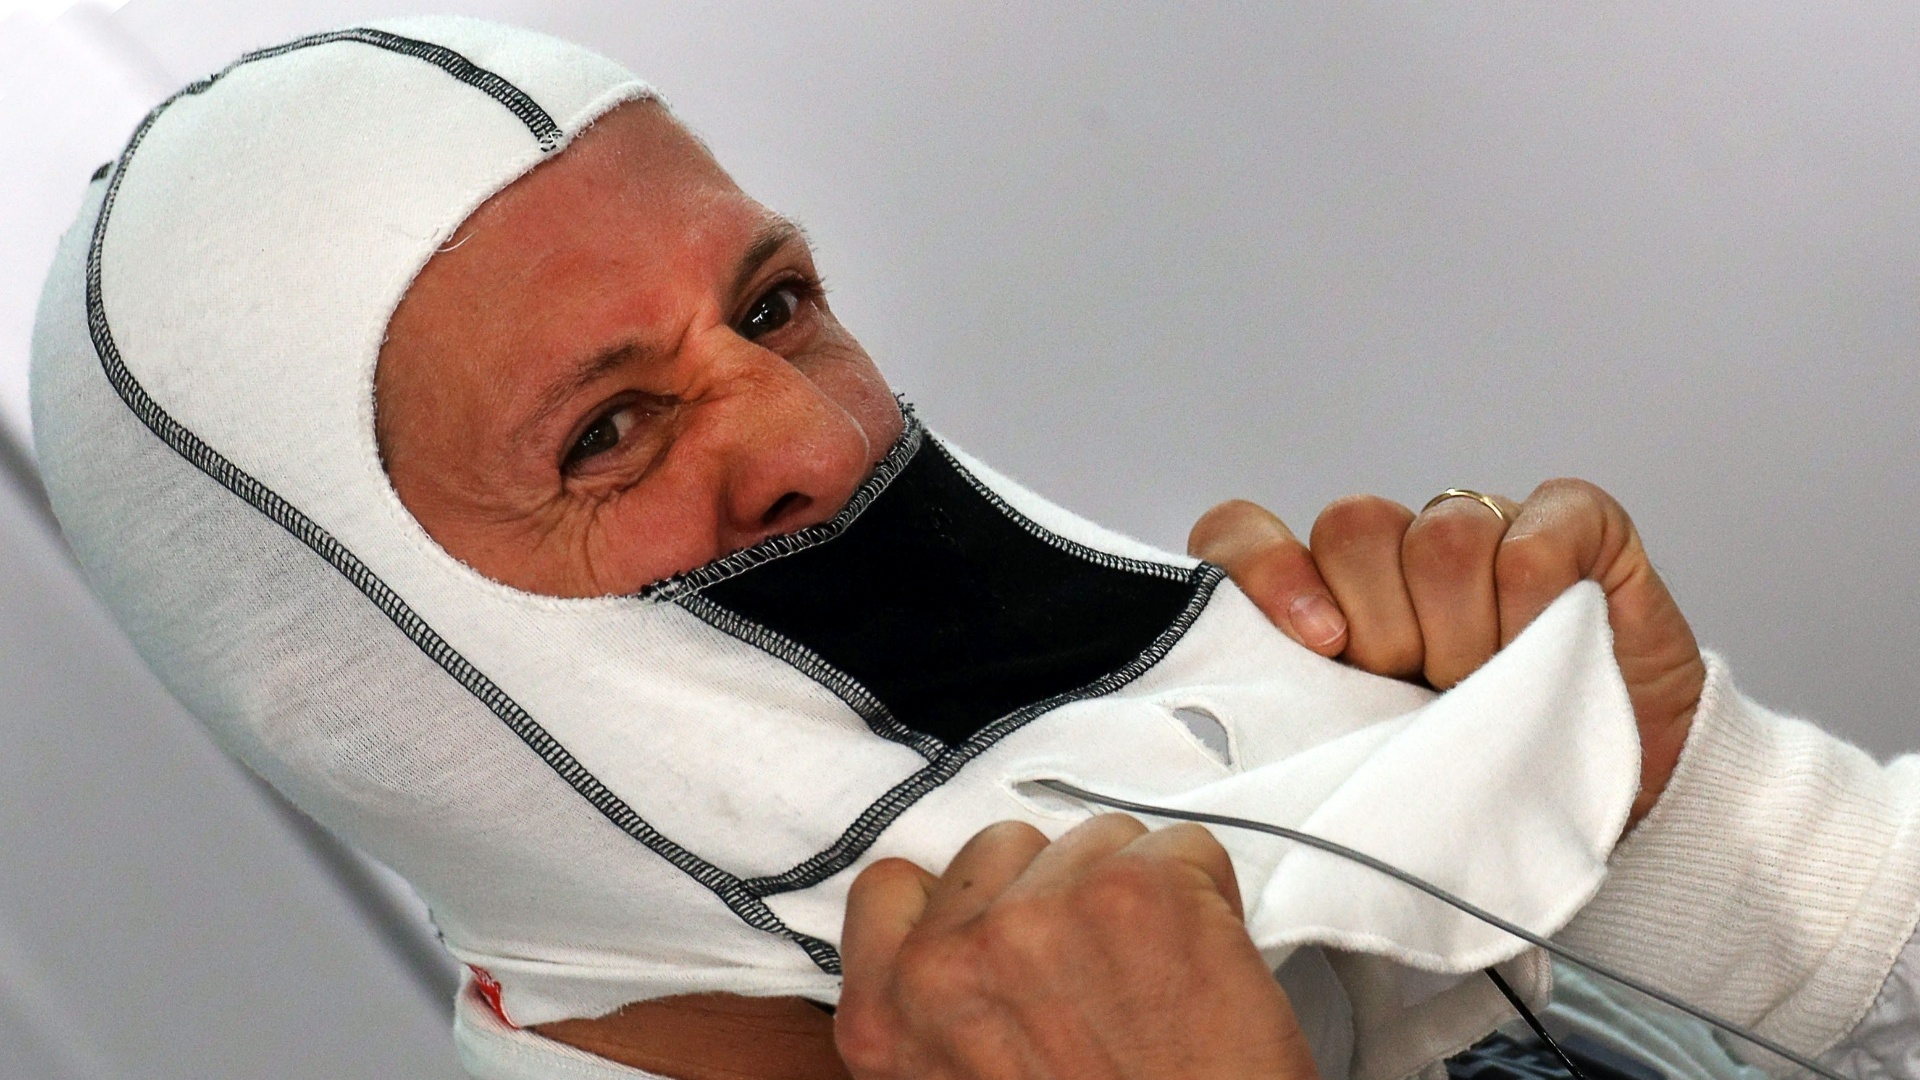 Michael Schumacher ajeita a balaclava da Mercedes antes de ir para a pista no treino do GP da ndia